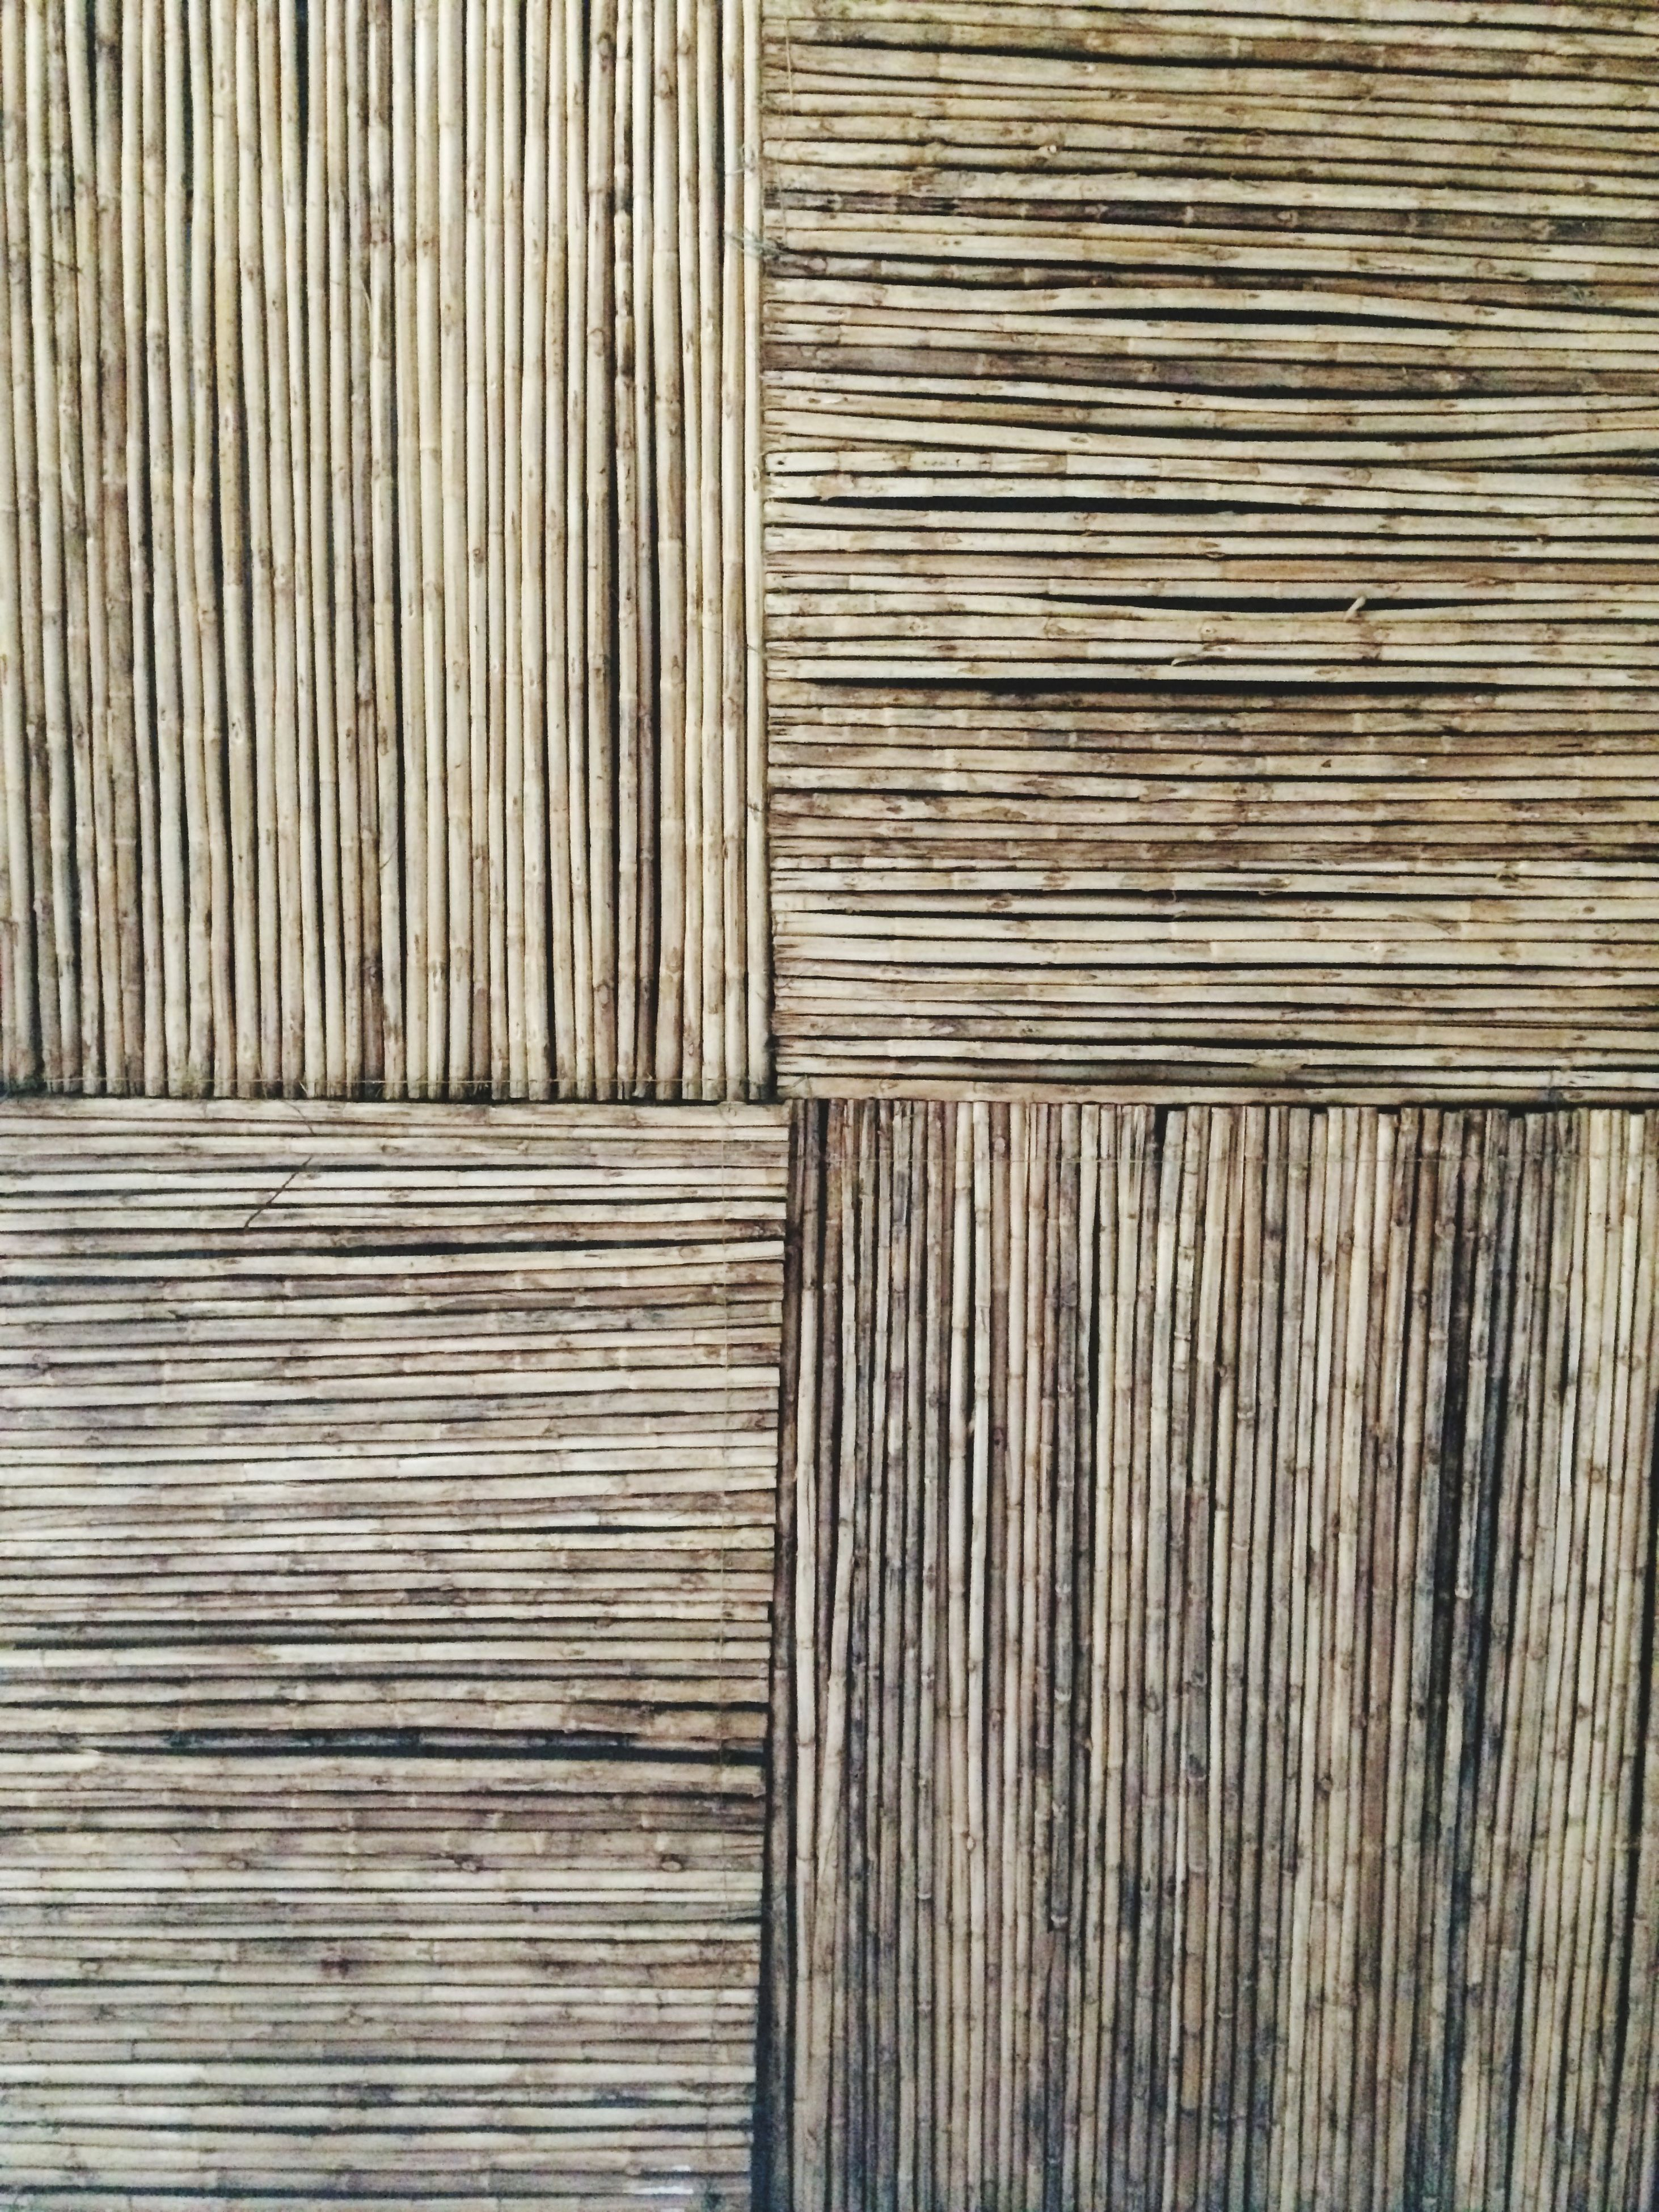 full frame, backgrounds, pattern, textured, wood - material, wooden, close-up, repetition, wood, detail, protection, in a row, no people, plank, day, abundance, outdoors, fence, brown, closed